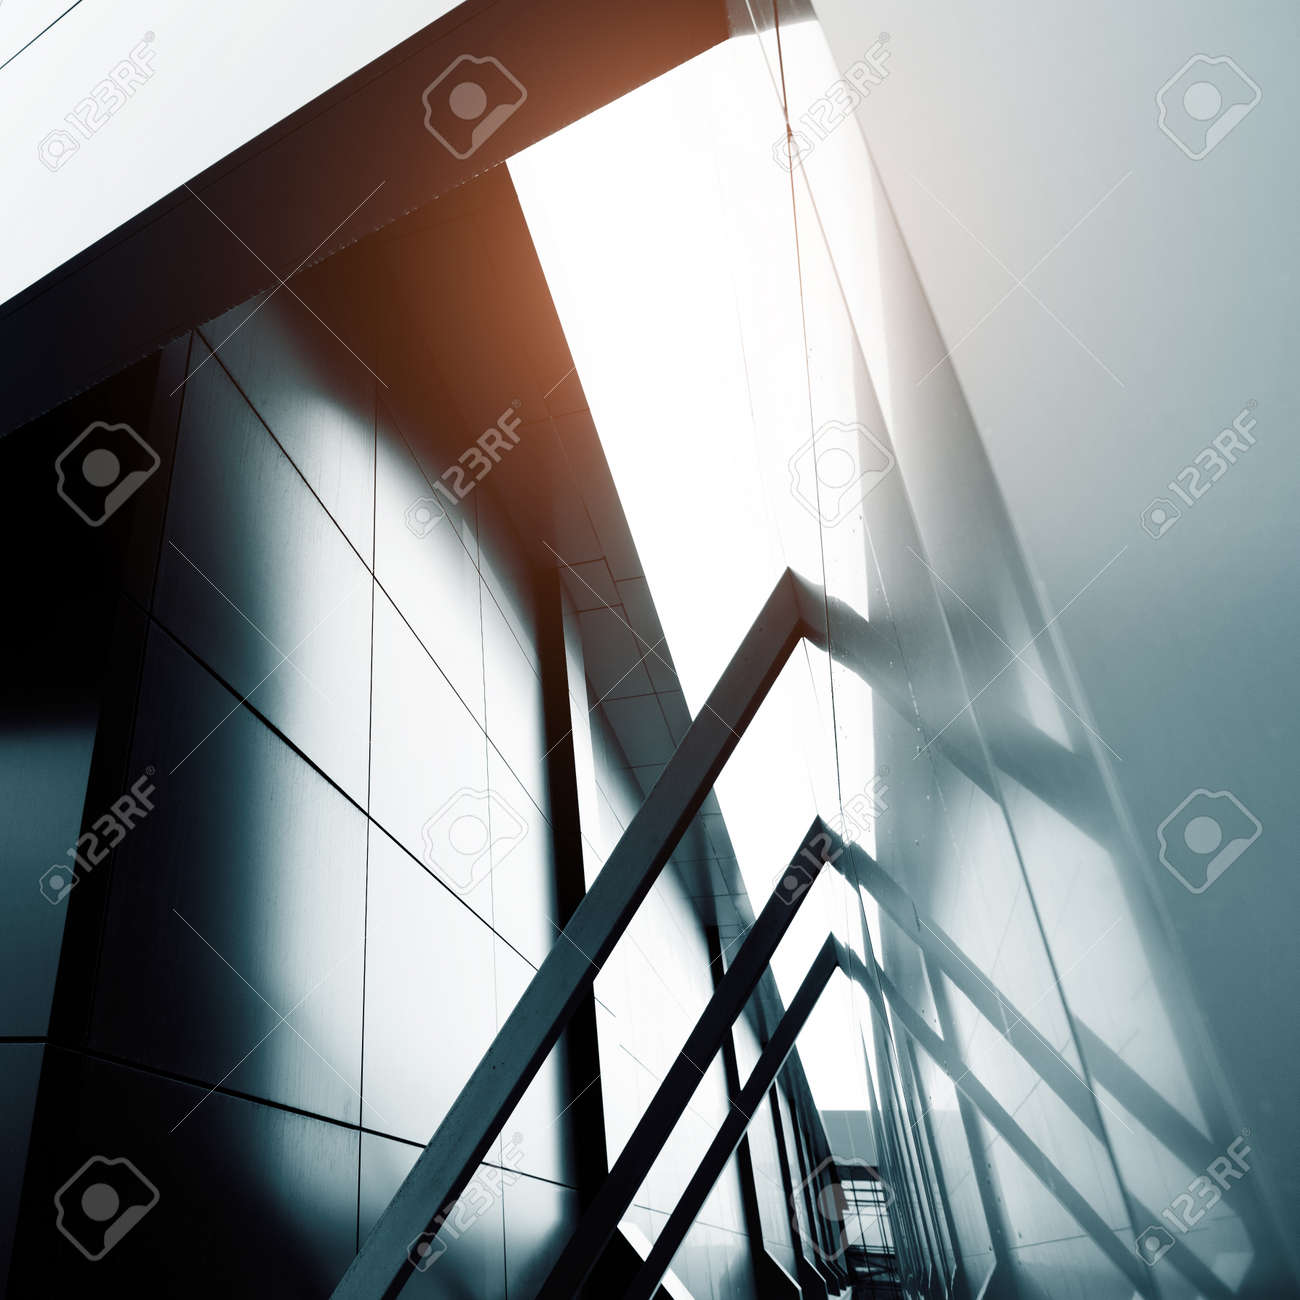 Wide angle abstract background view of steel light blue high rise commercial building skyscraper made of glass exterior. concept of successful industrial architecture and office center building - 56812556